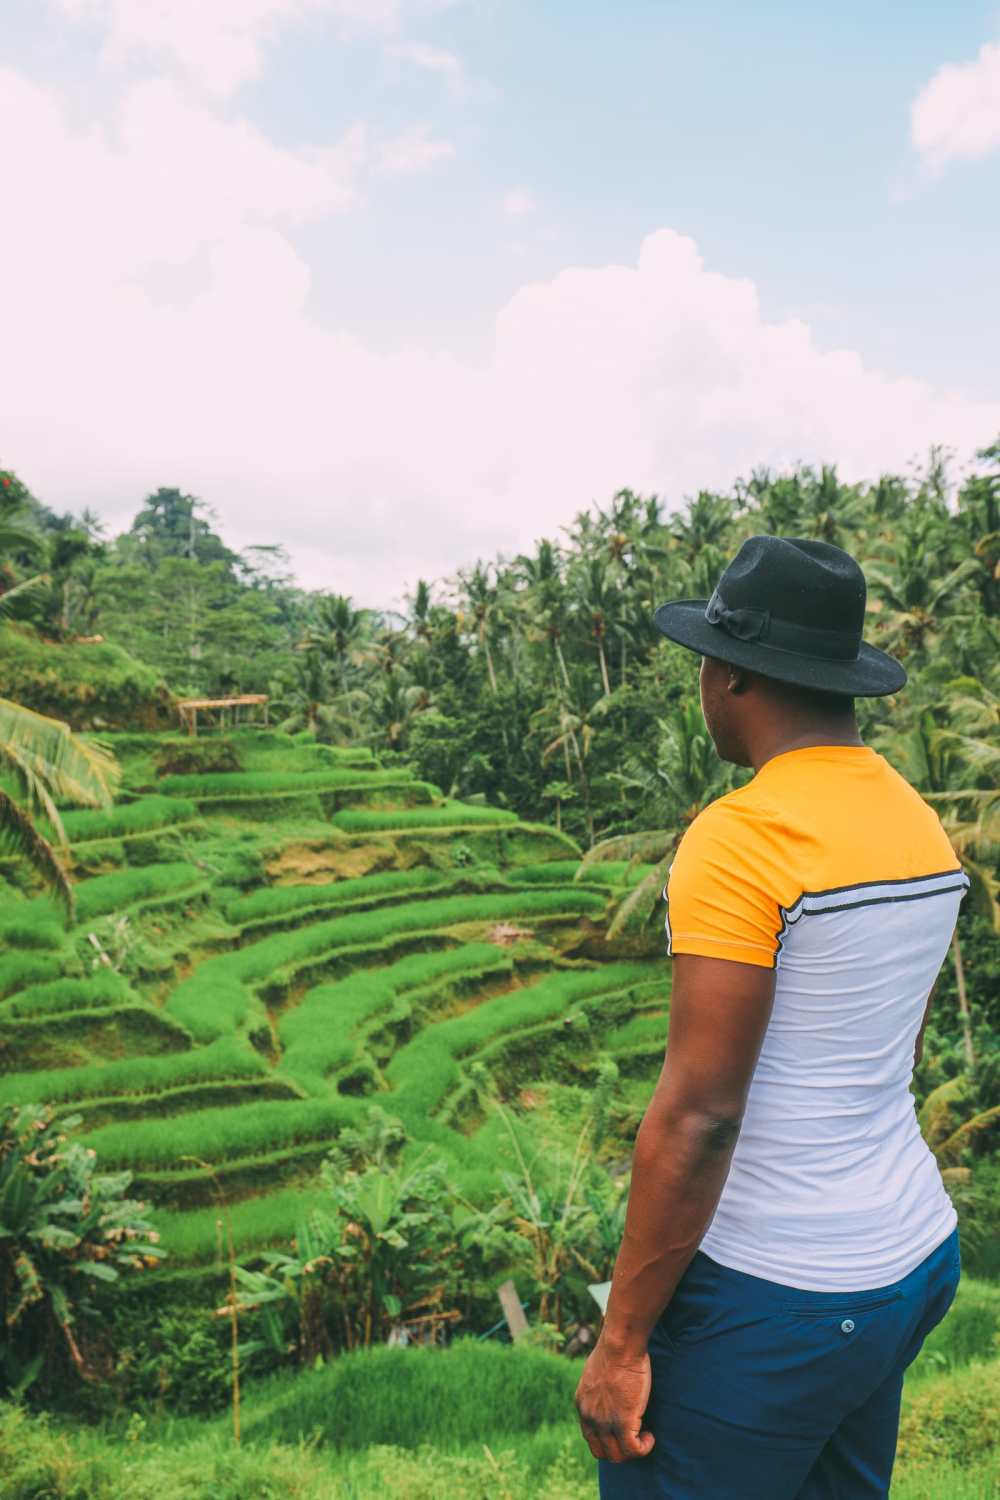 Bali Travel - Tegalalang Rice Terrace In Ubud And Gunung Kawi Temple (9)